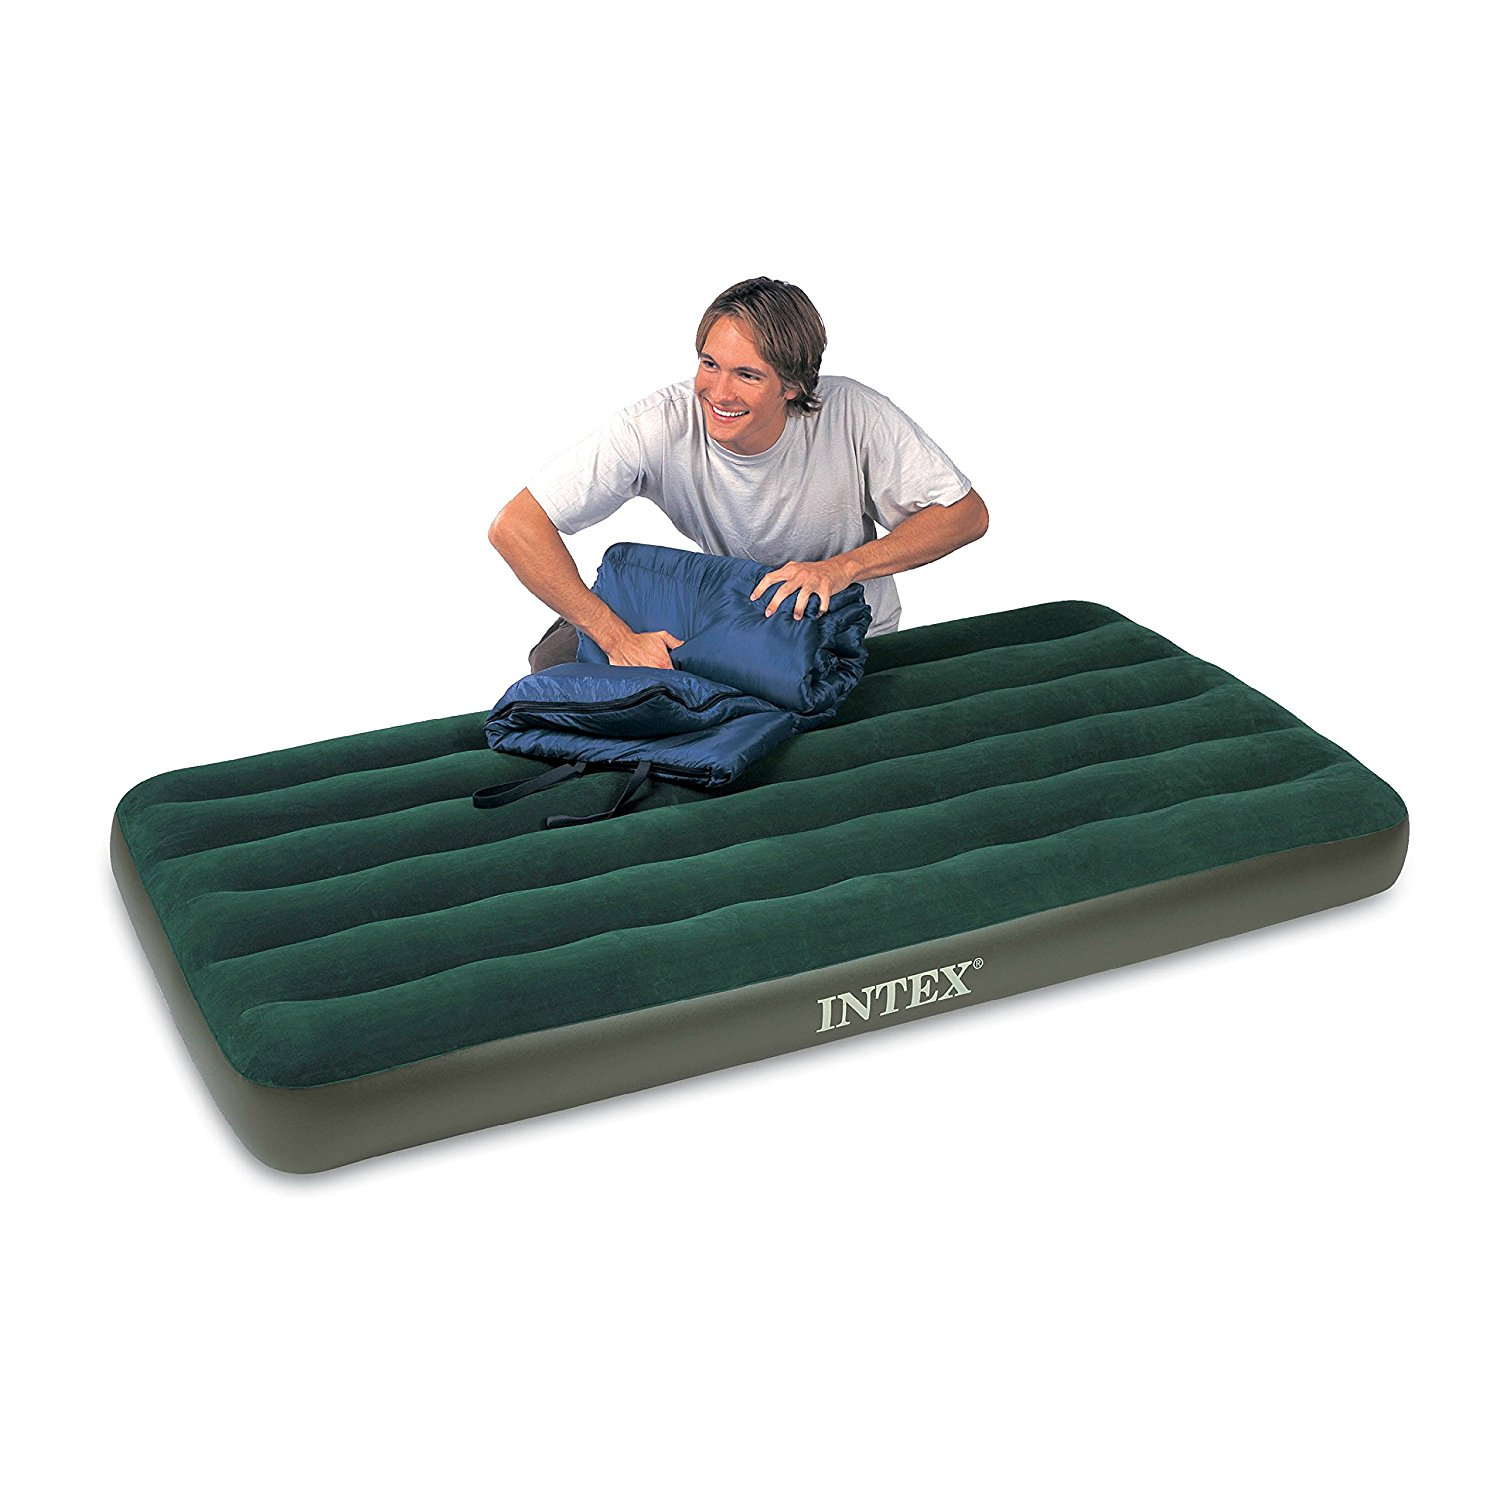 The airbed is 63% off today (Photo via Amazon)